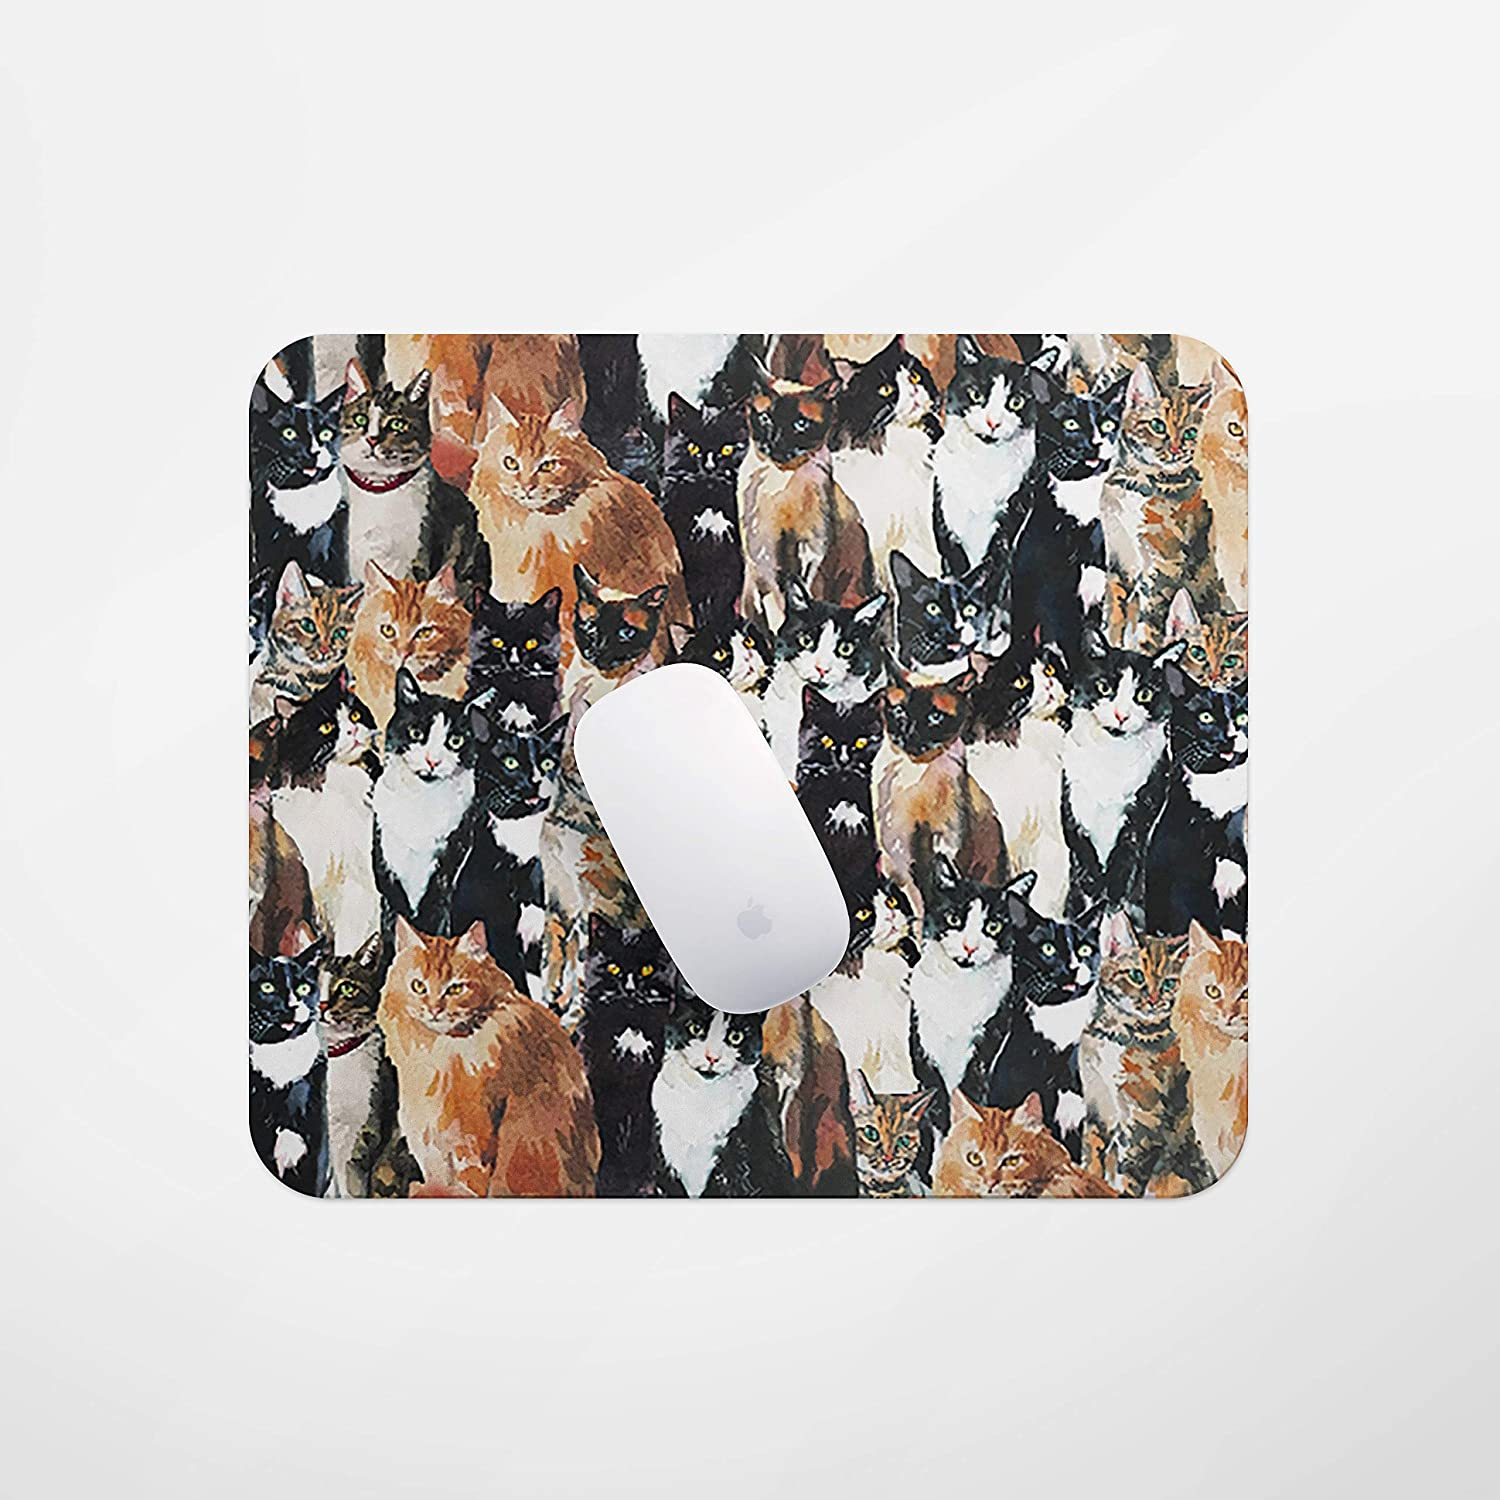 Rectangular Mouse pad, Cute cat Mouse pad, Small Mouse pad with Design, Non-Slip Rubber Mouse pad, Custom Animal Mouse pad for Female Girl Office Dorm Computer Laptop Travel